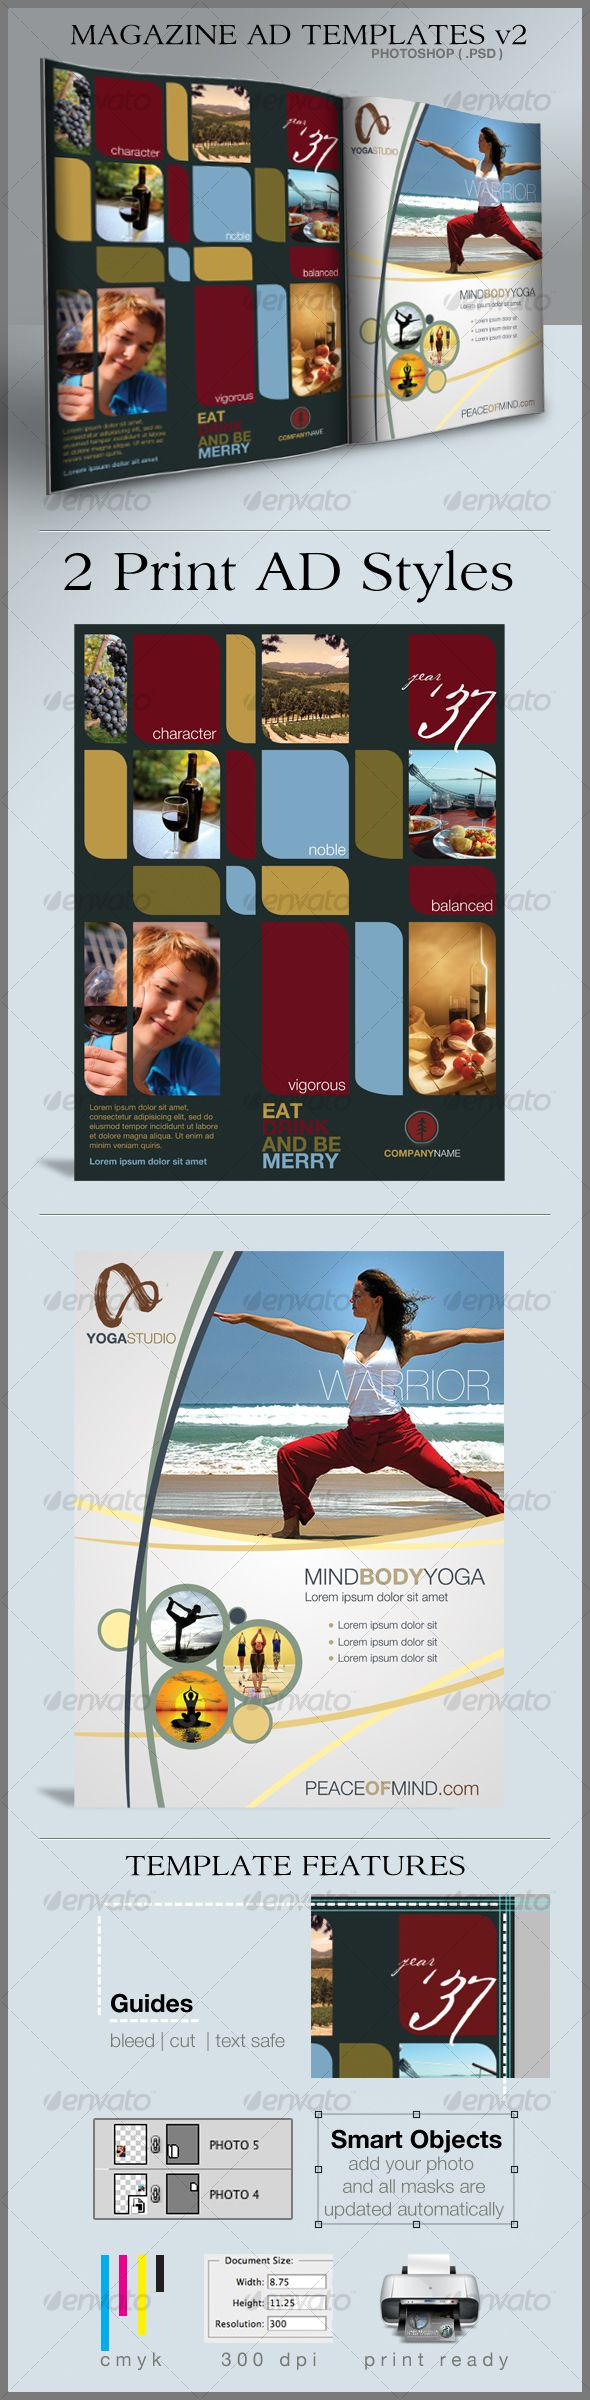 print ad templates v2 print ads and templates print ad templates v2